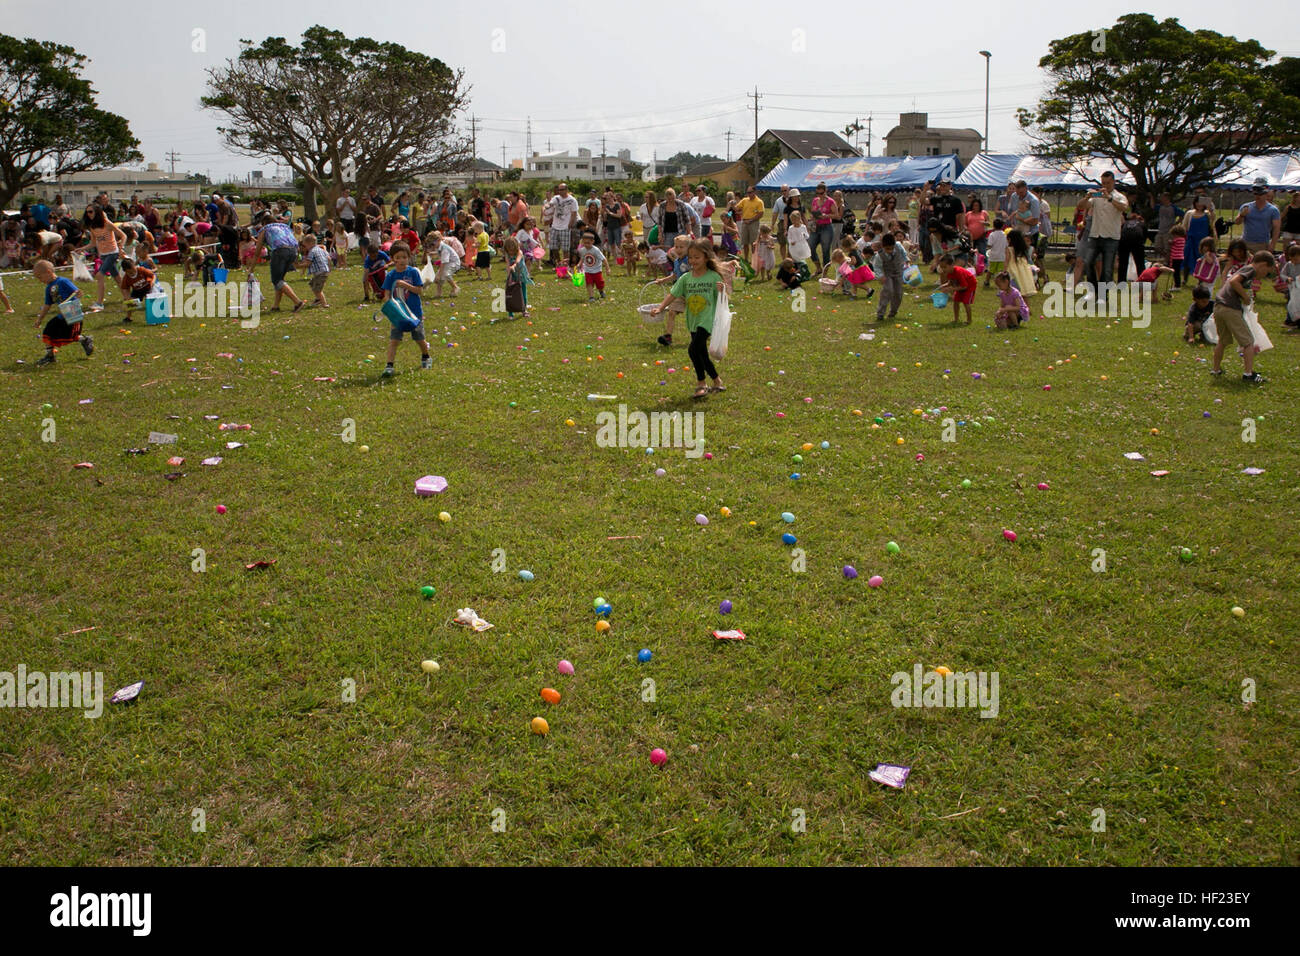 Children dash around a field to collect Easter eggs April 19 at the 'Camp Eggstravaganza' outside the Camp - Stock Image